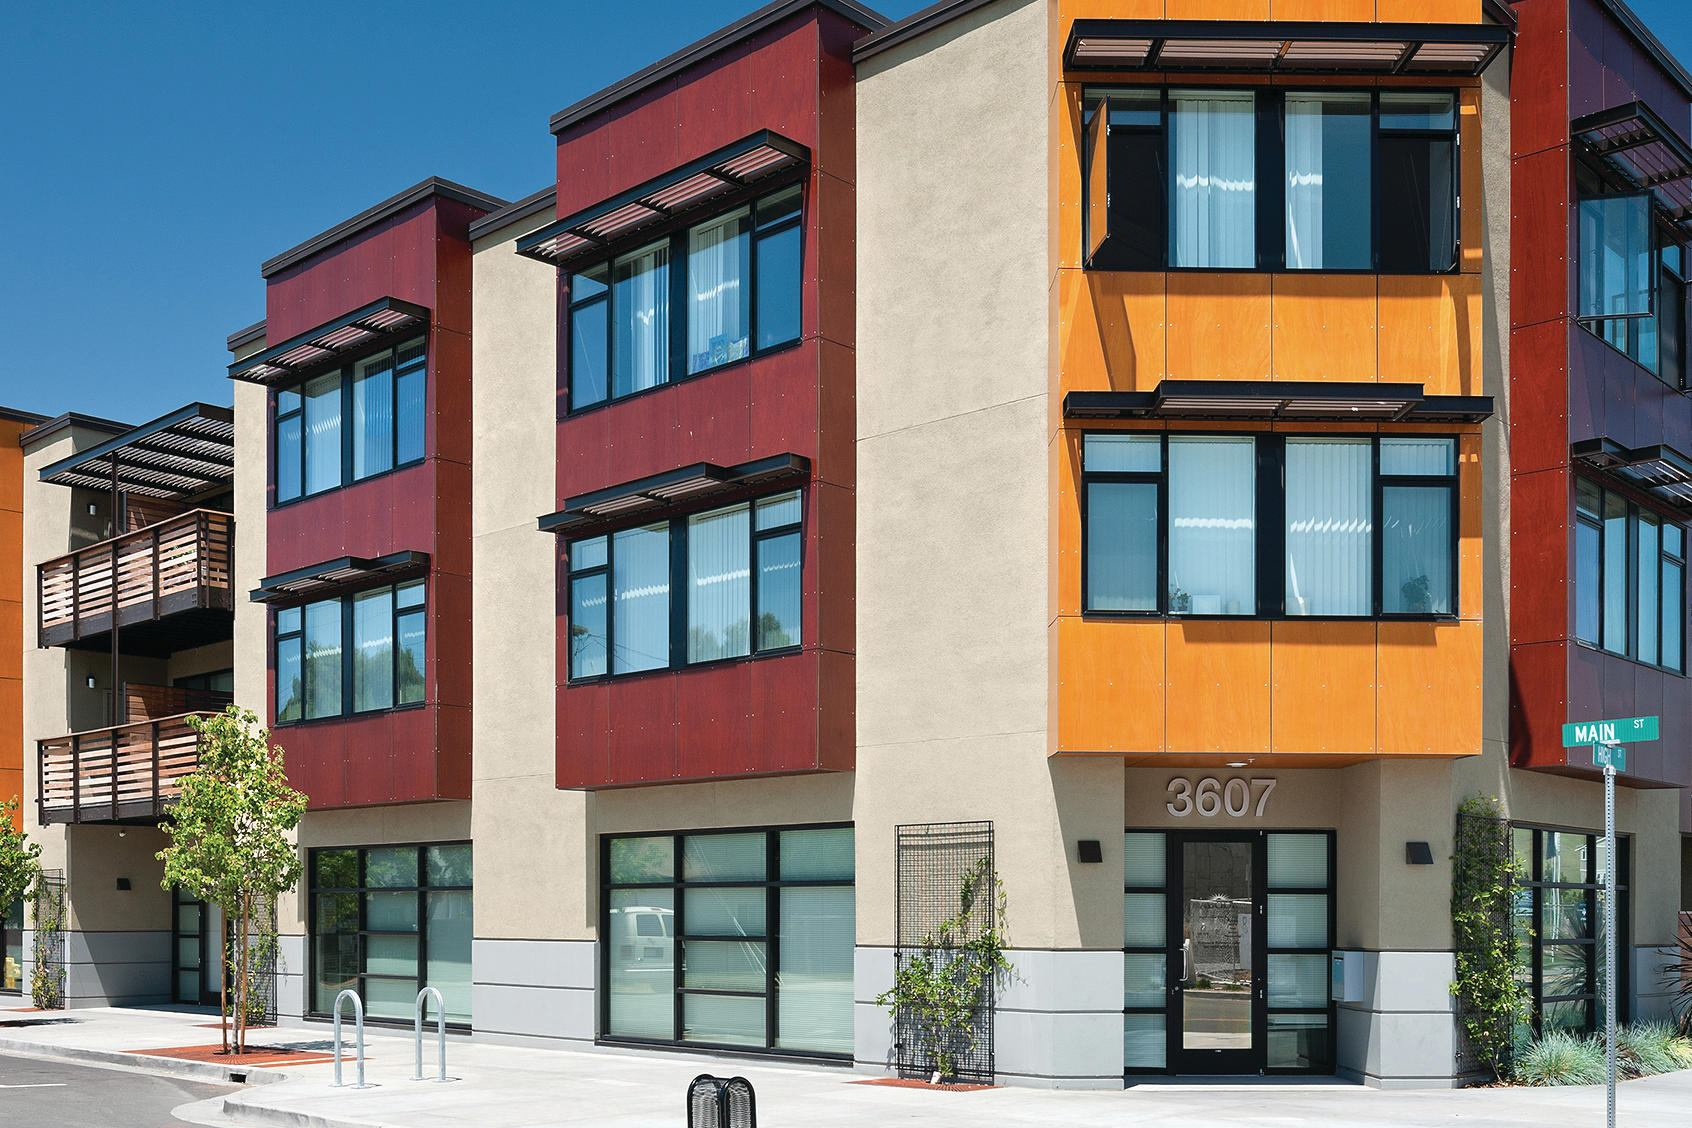 Ehda merit award main street village apartments - Garden village apartments fremont ca ...